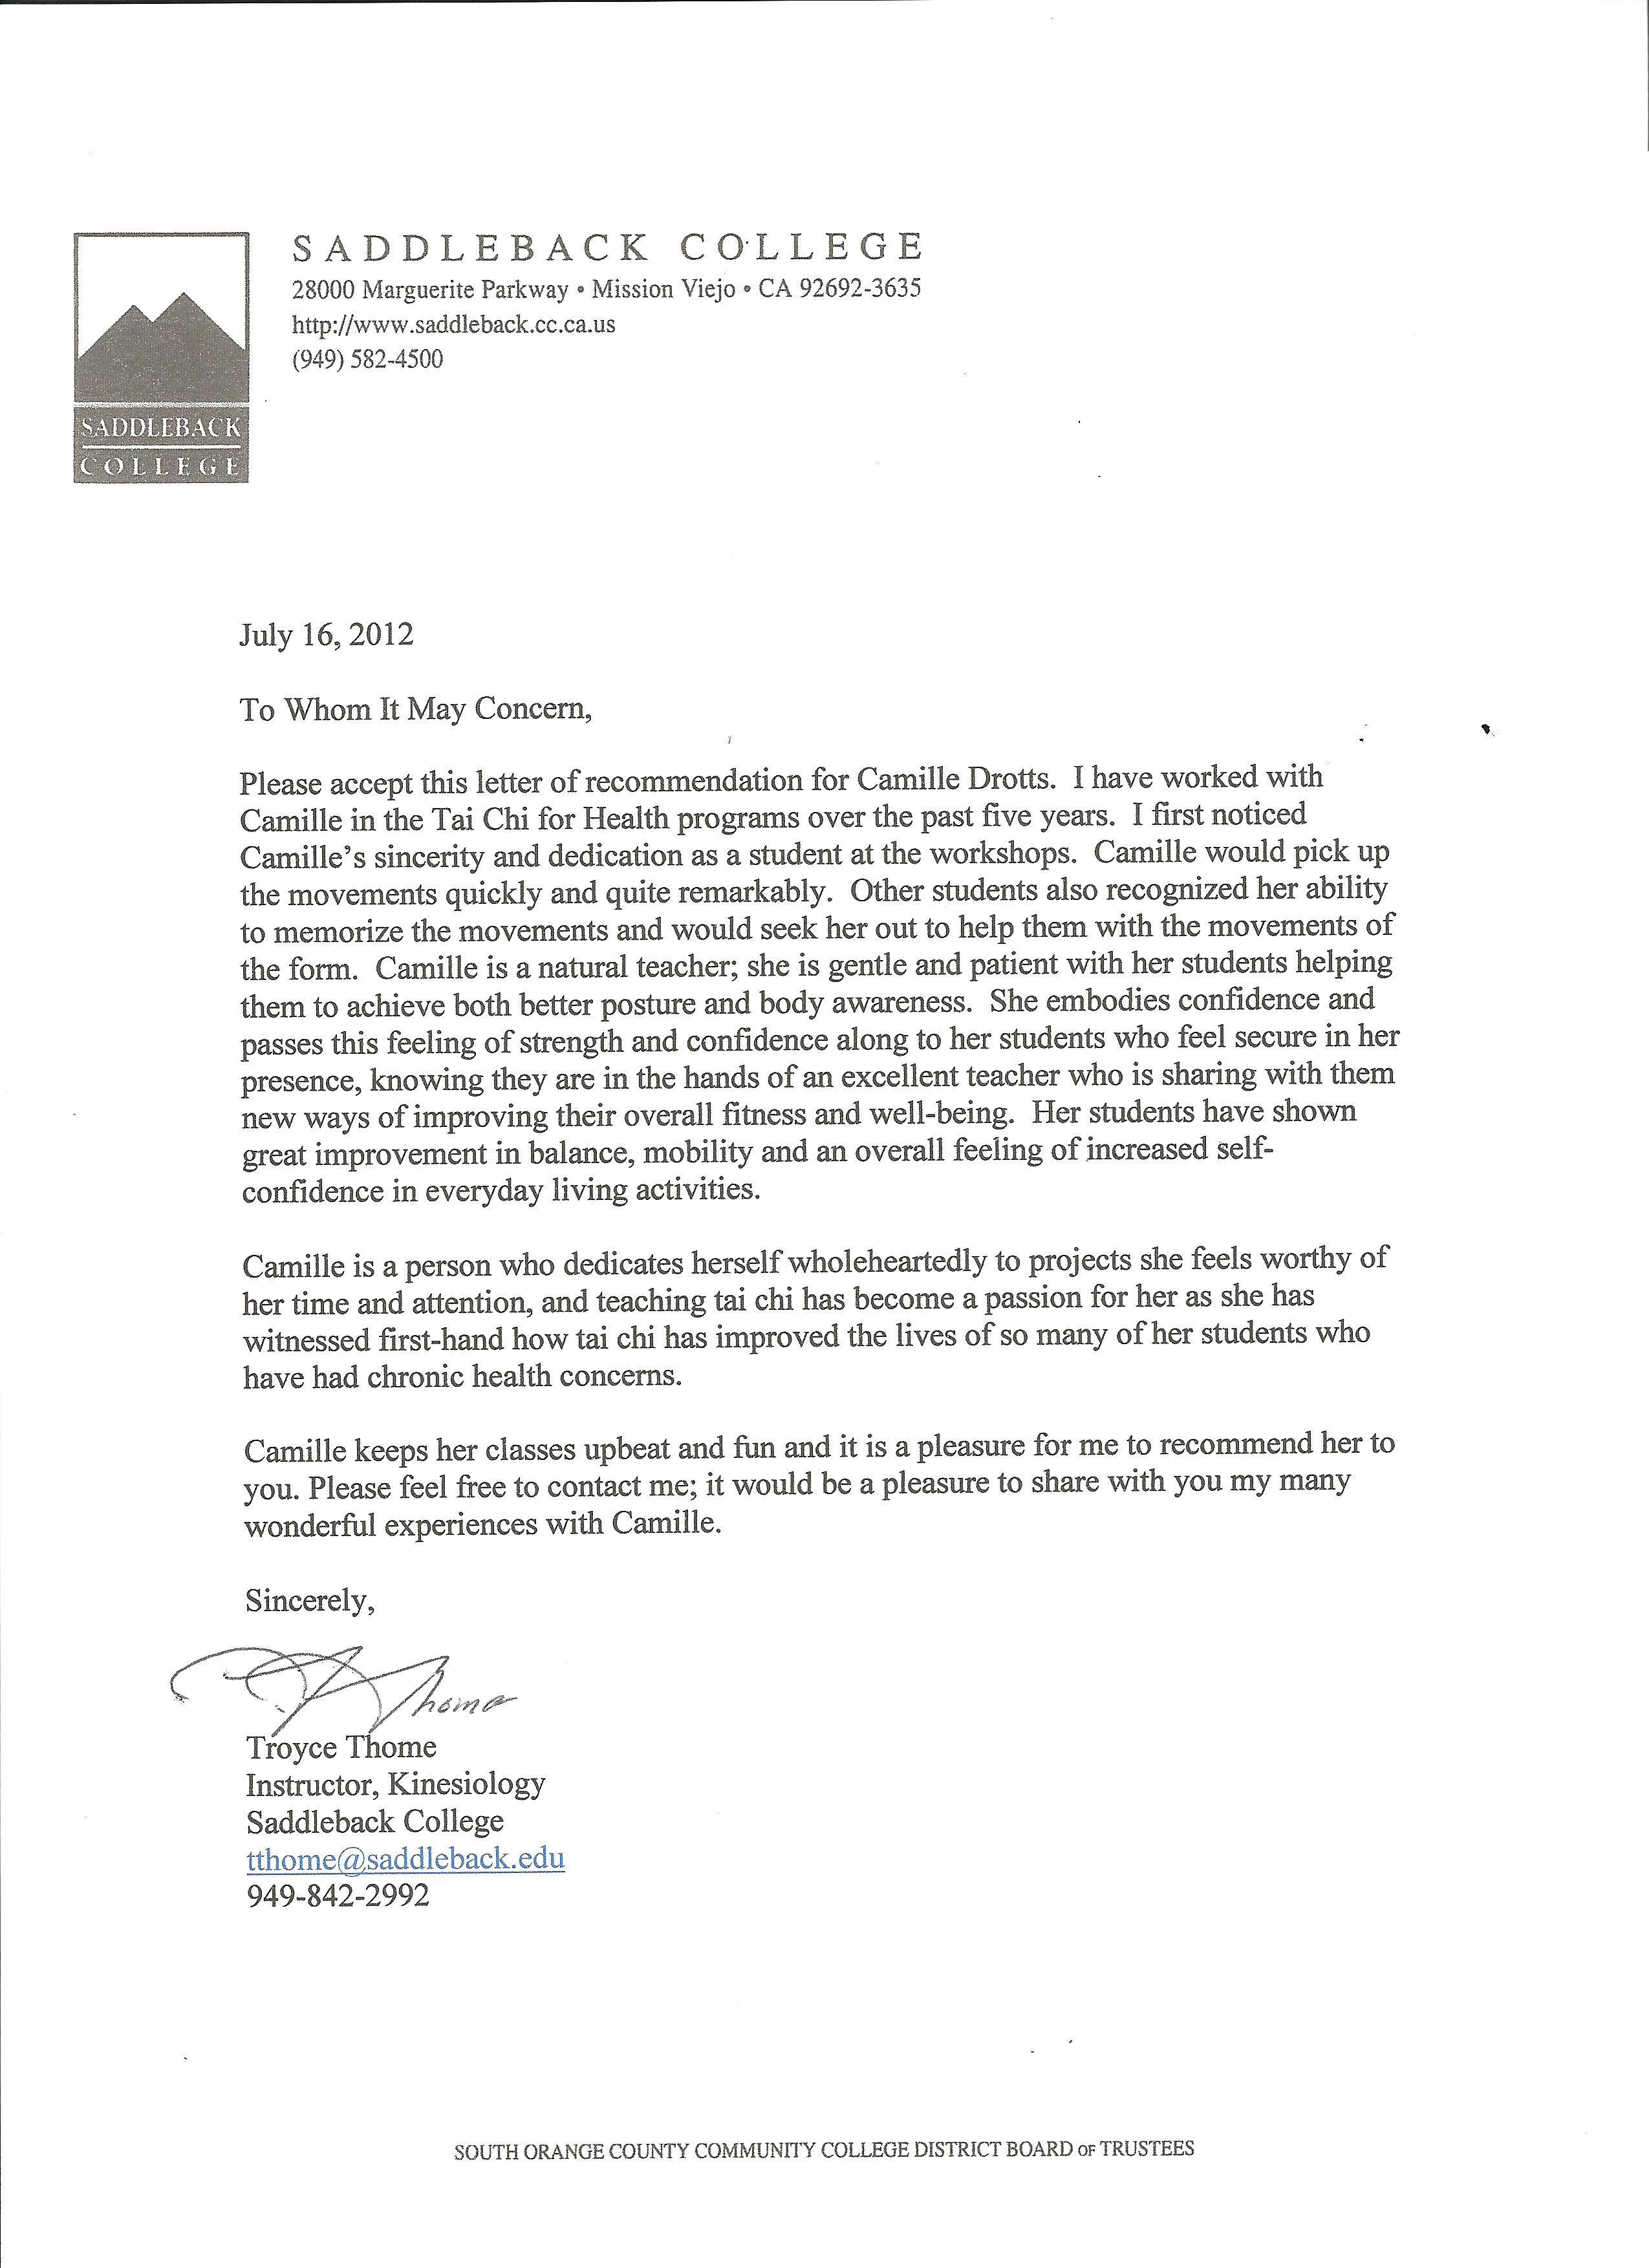 Tips for Writing a Genuine and Powerful College Recommendation Letter